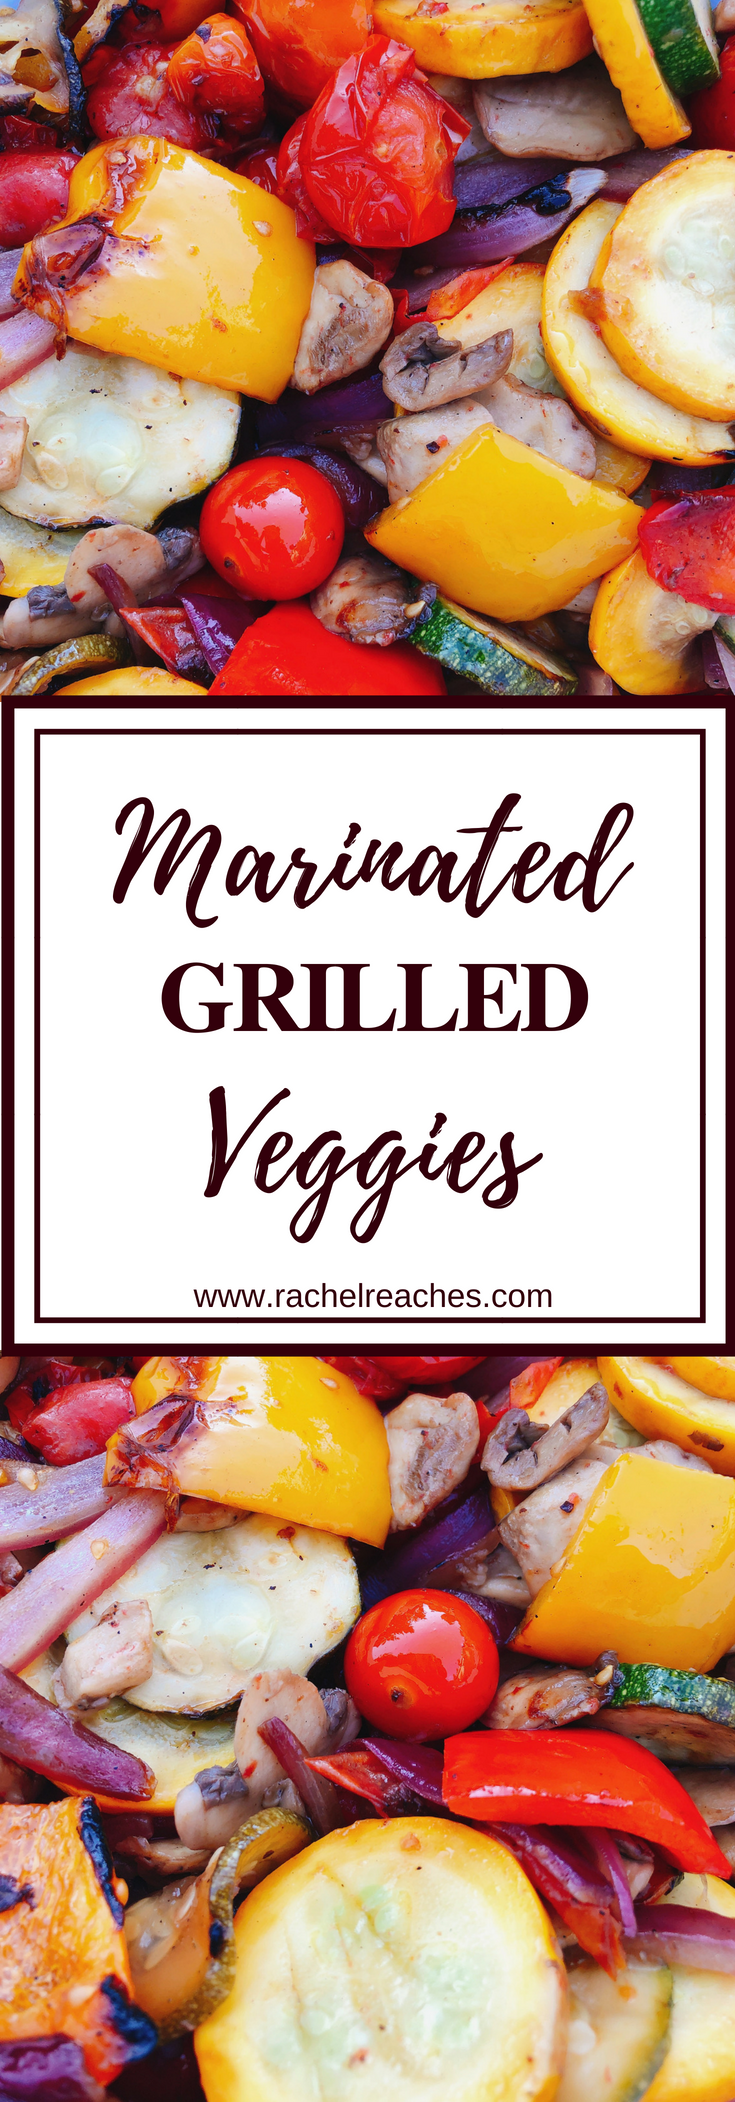 Marinated Grilled Veggies Pin - Healthy Eating.png